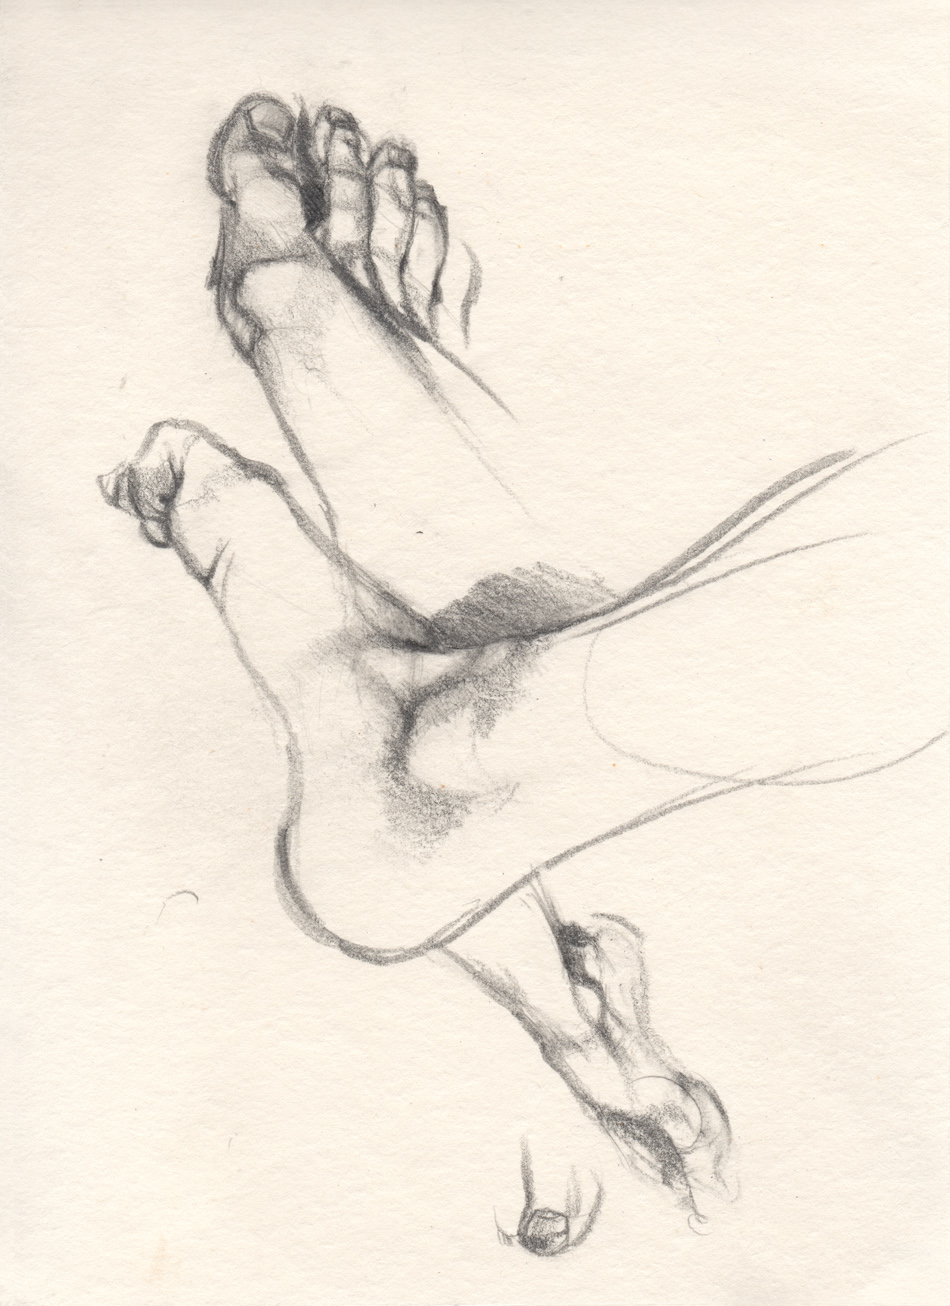 Sketches - Pencil Drawings - Figure Drawing : The studies of my foot, pencil drawing.